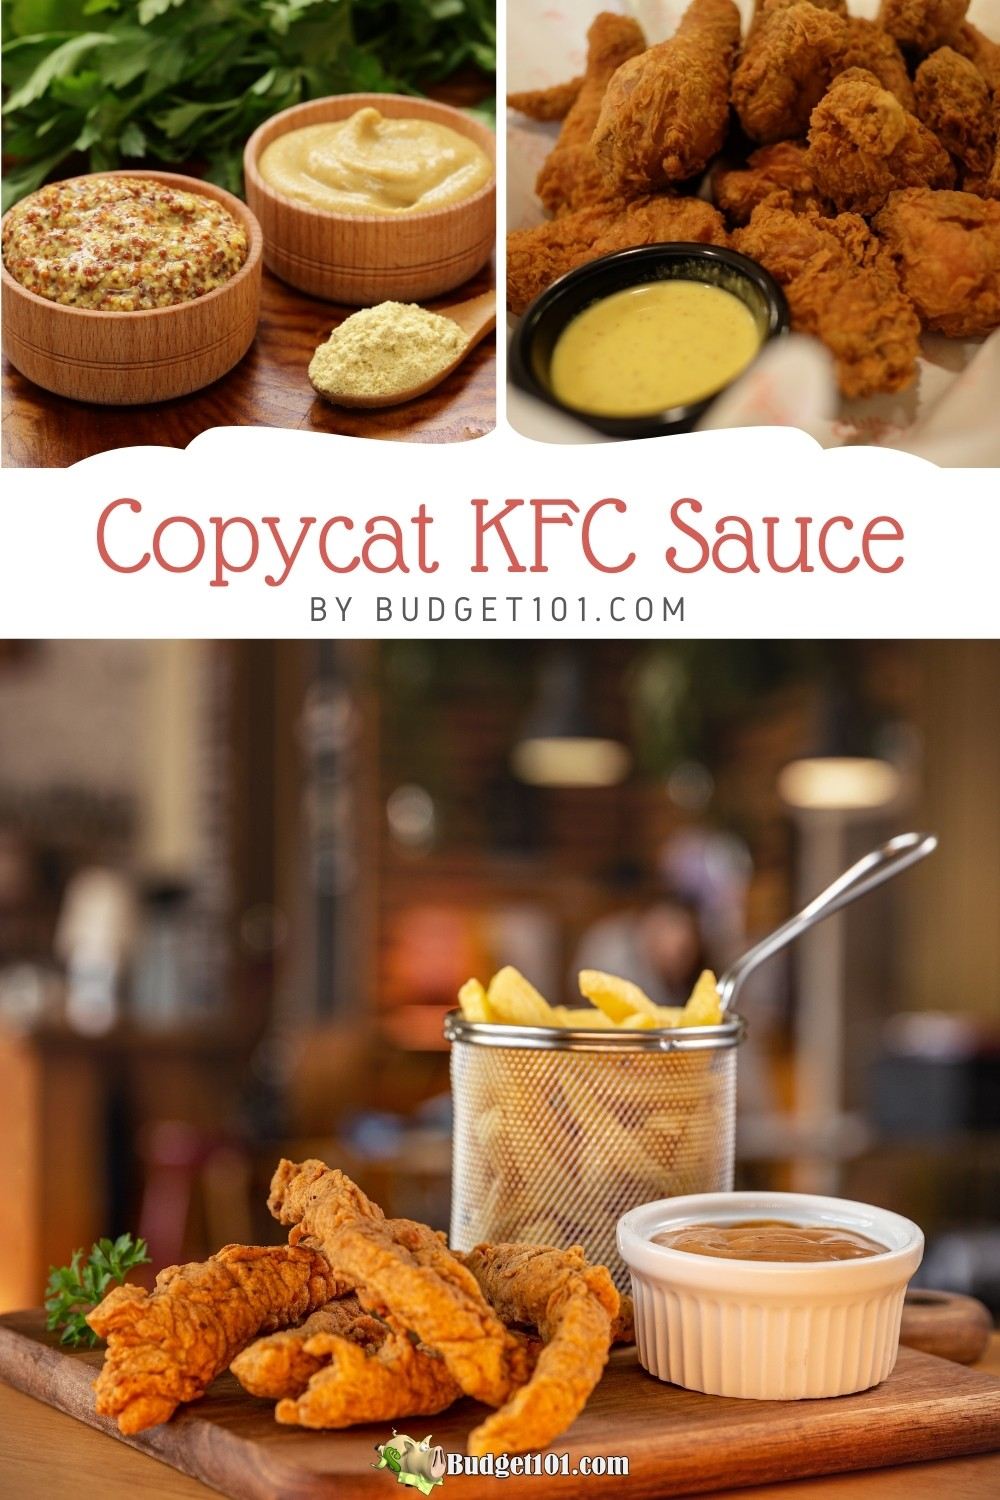 Copycat KFC Sauce- sweet,tangy and just a hint of smokiness, this clone is sure to be a fave in your house too! #KFC #KFCrecipes #Copycat #Clone #KFCsauce #MYO #Budget101